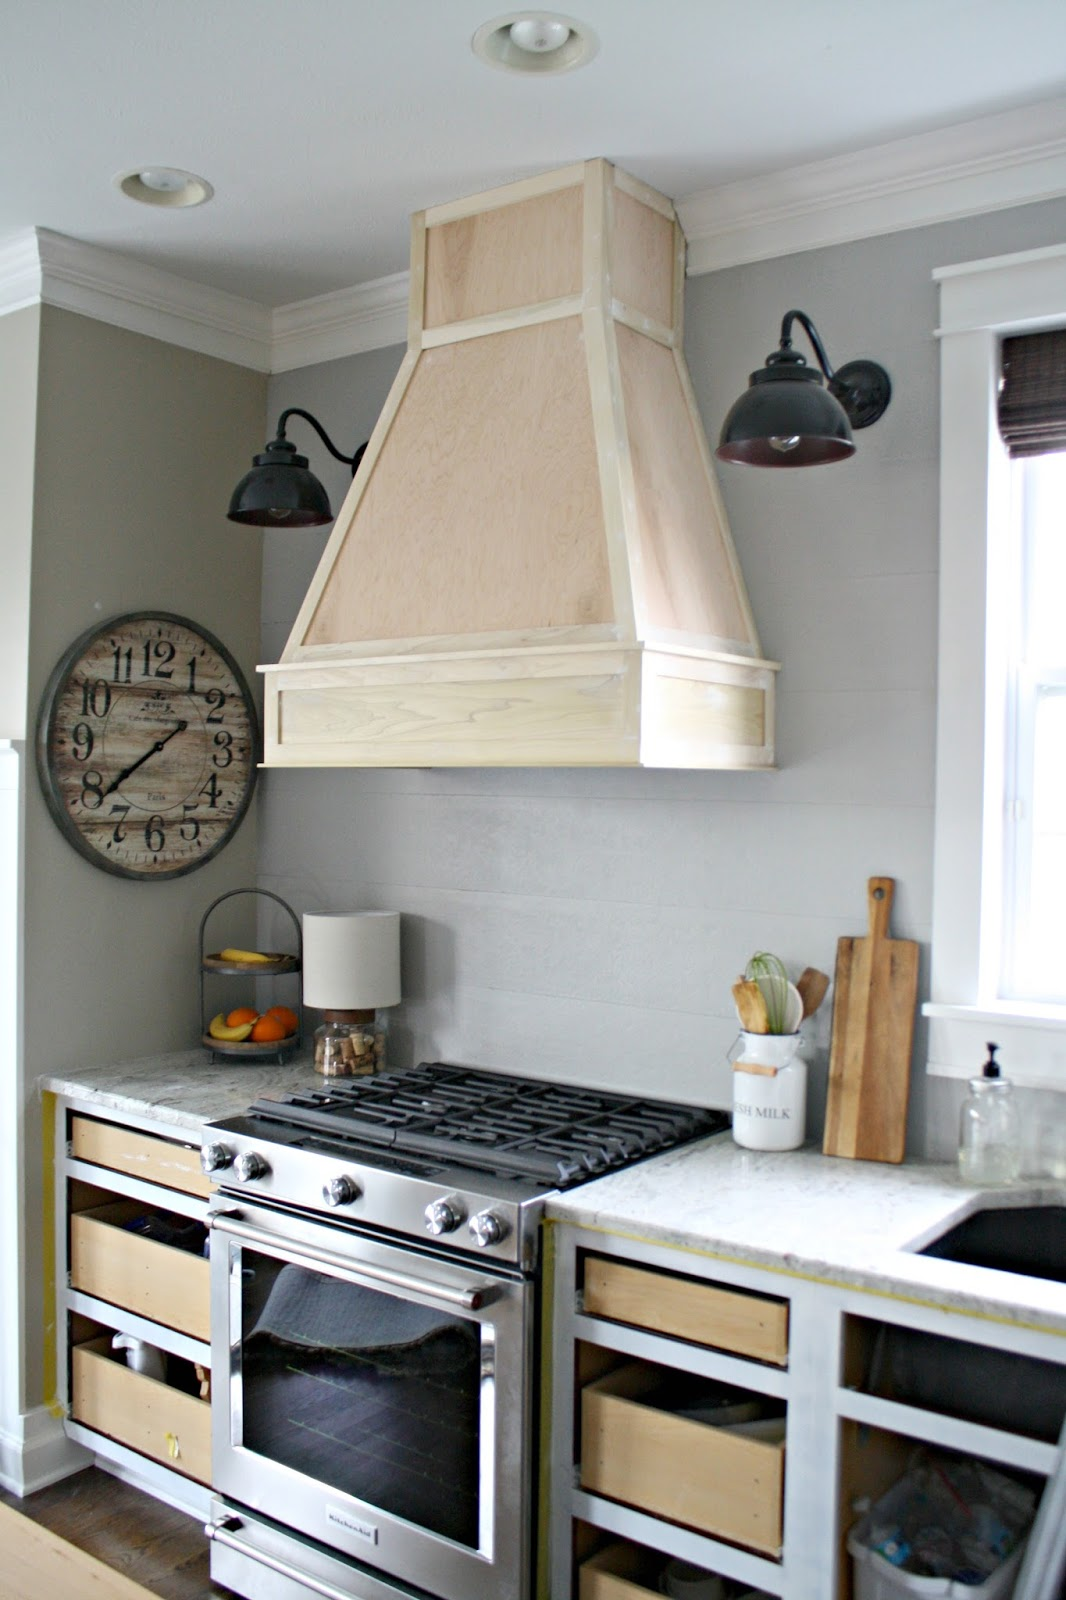 Kitchen Hood A Diyish Wood Vent Hood From Thrifty Decor Chick